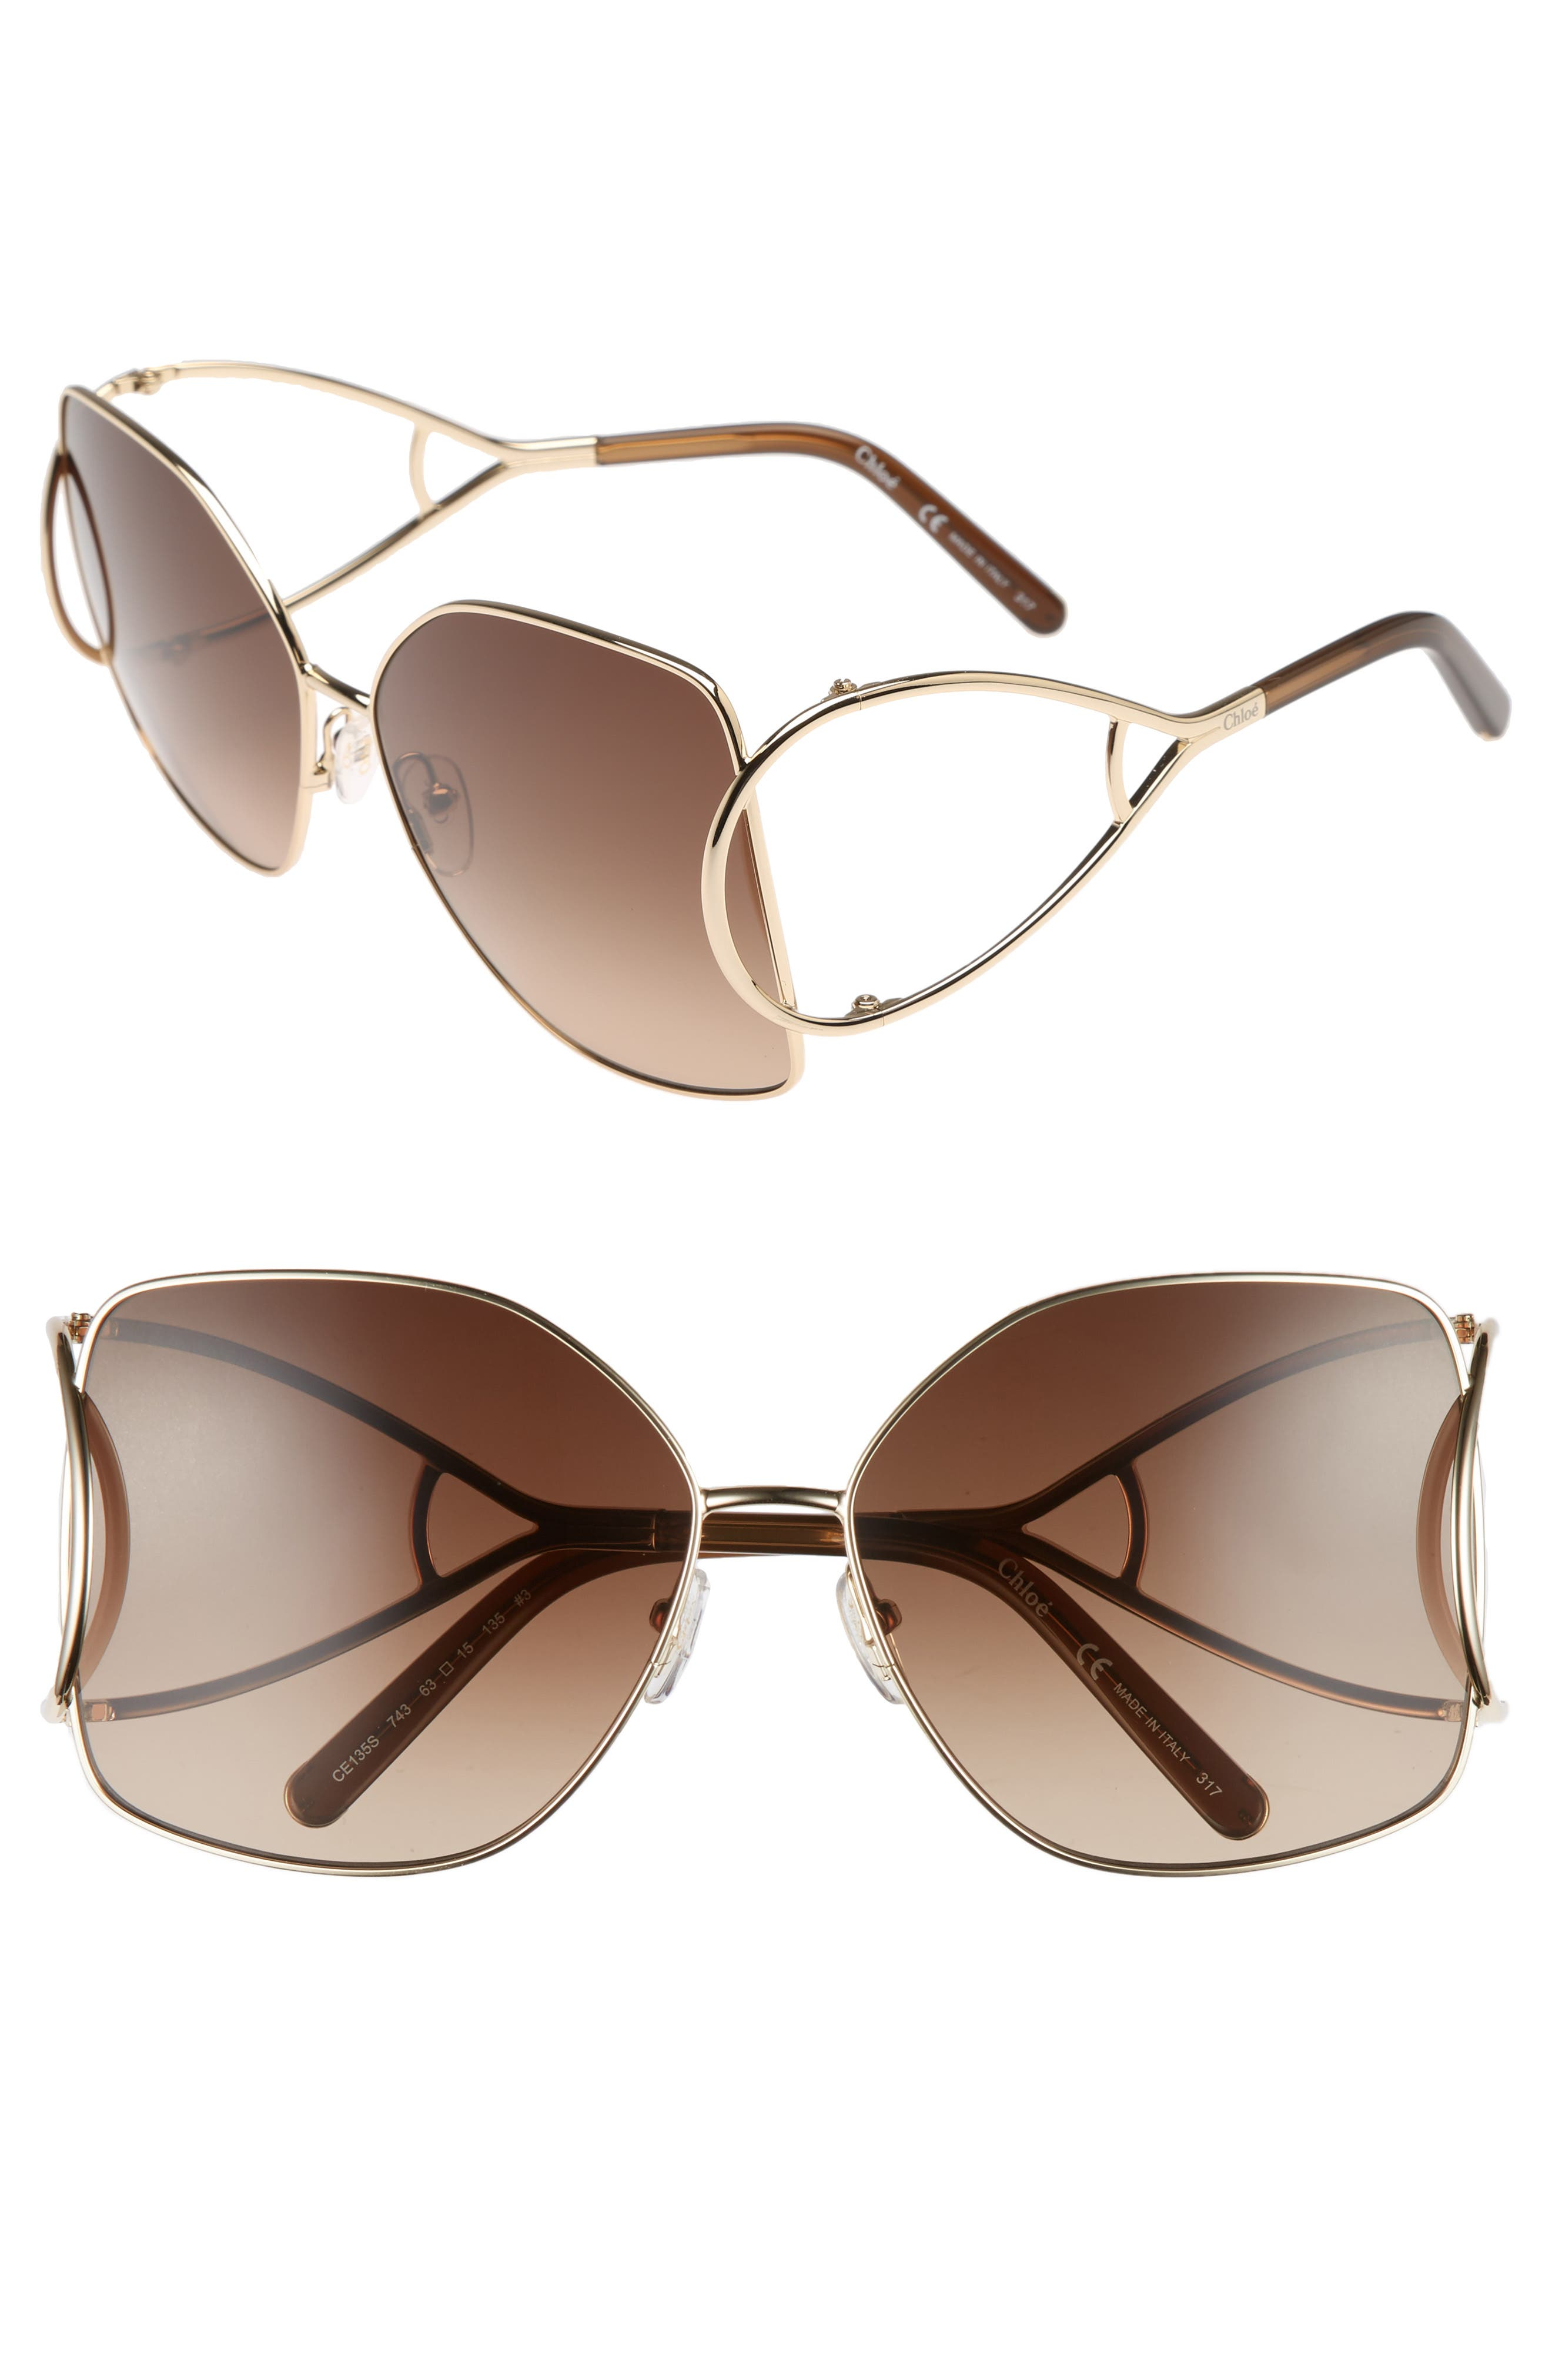 63mm Wrapover Frame Sunglasses,                             Main thumbnail 1, color,                             Gold/ Brown